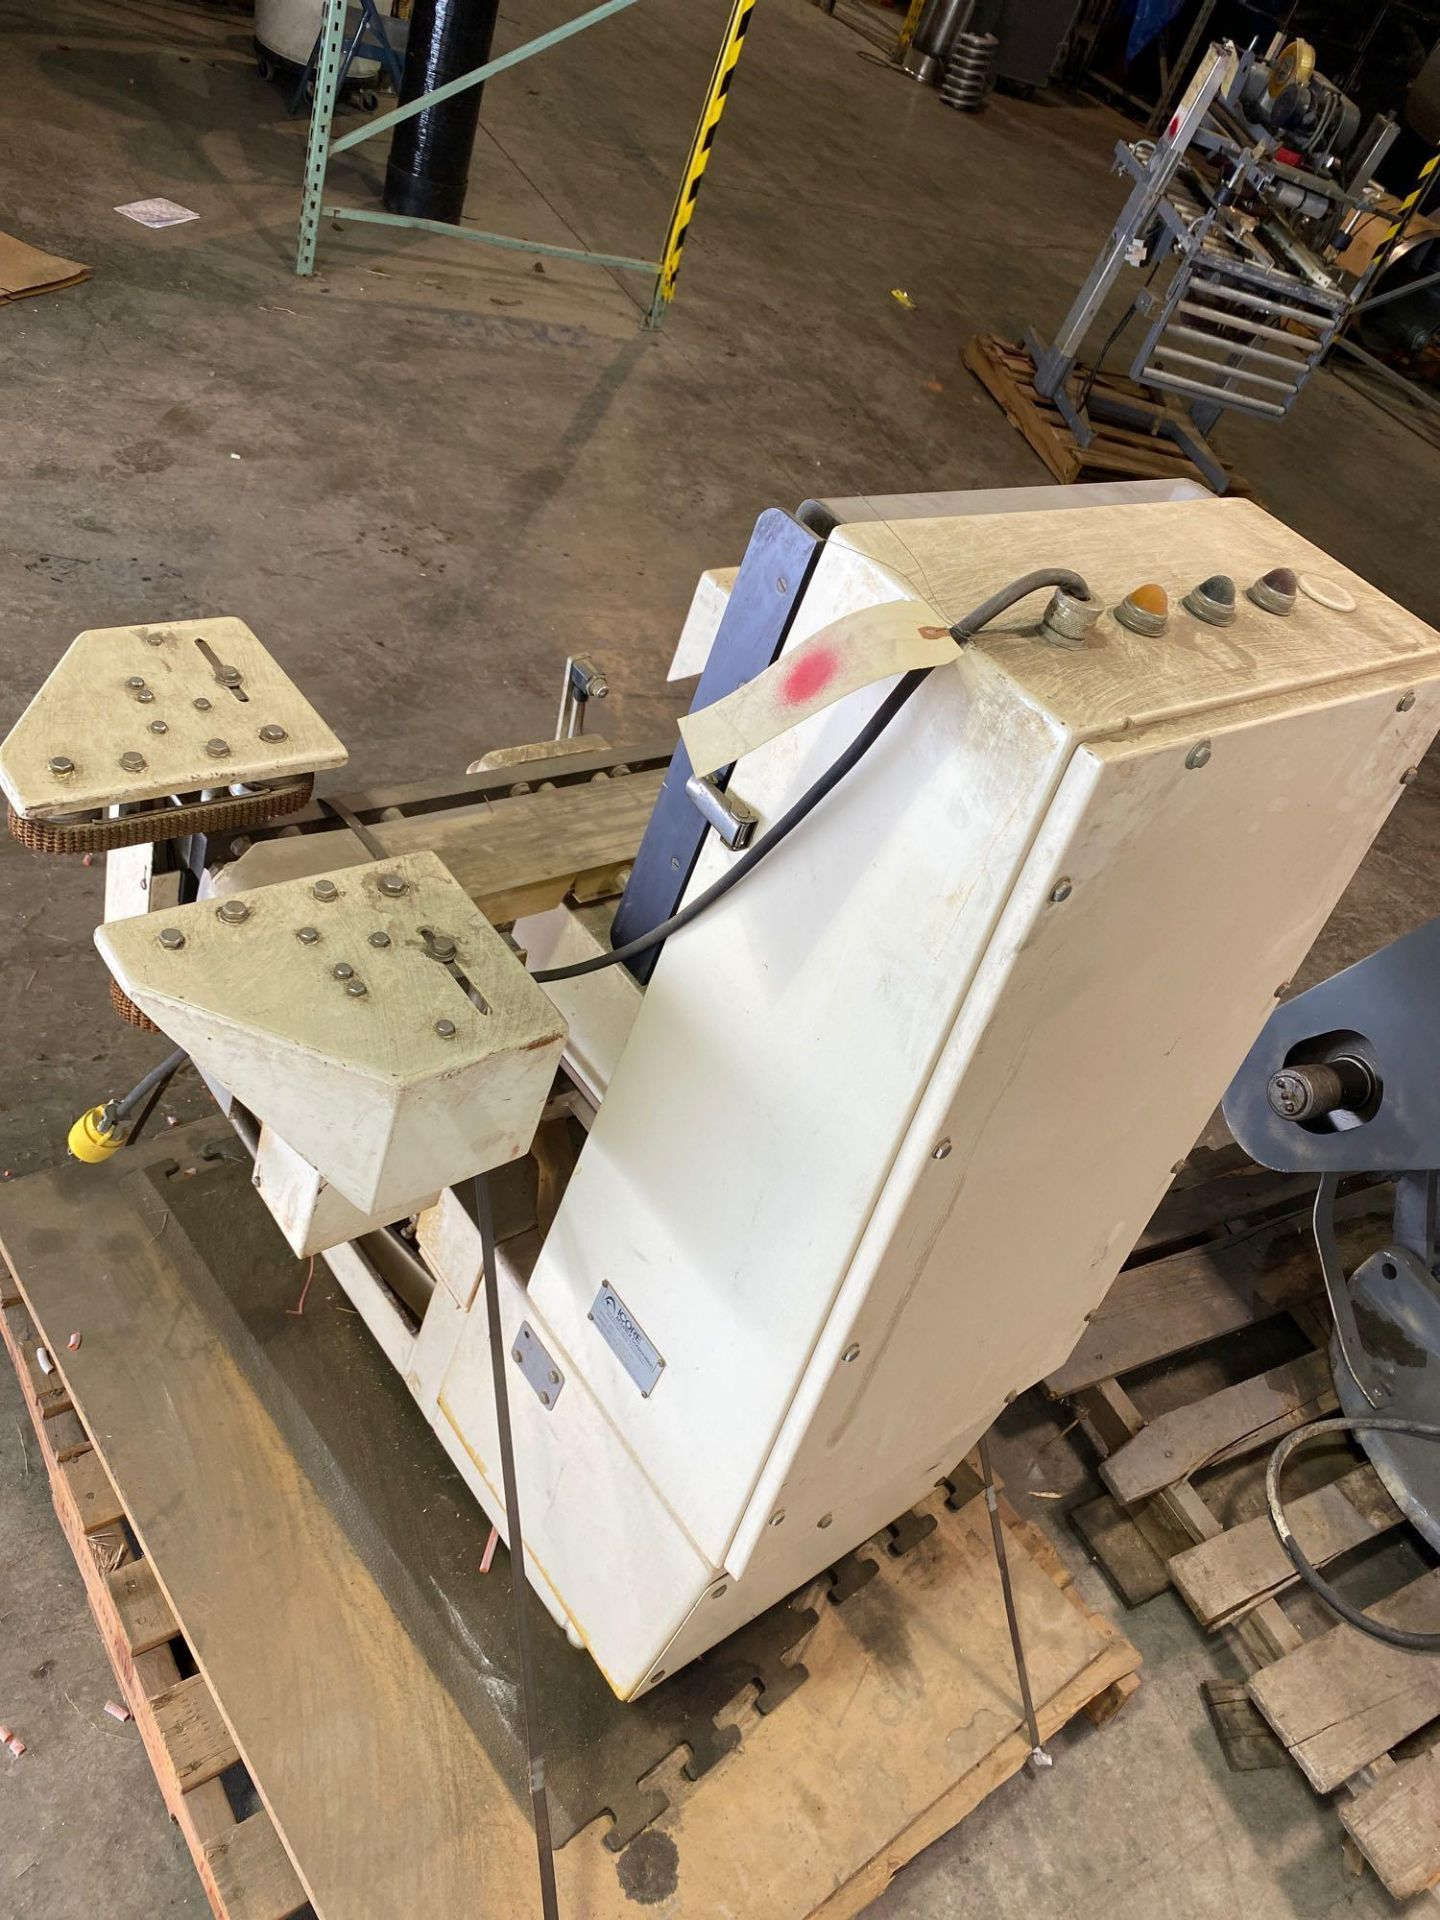 AutoChecker 2000 Checkweigher - Image 4 of 8